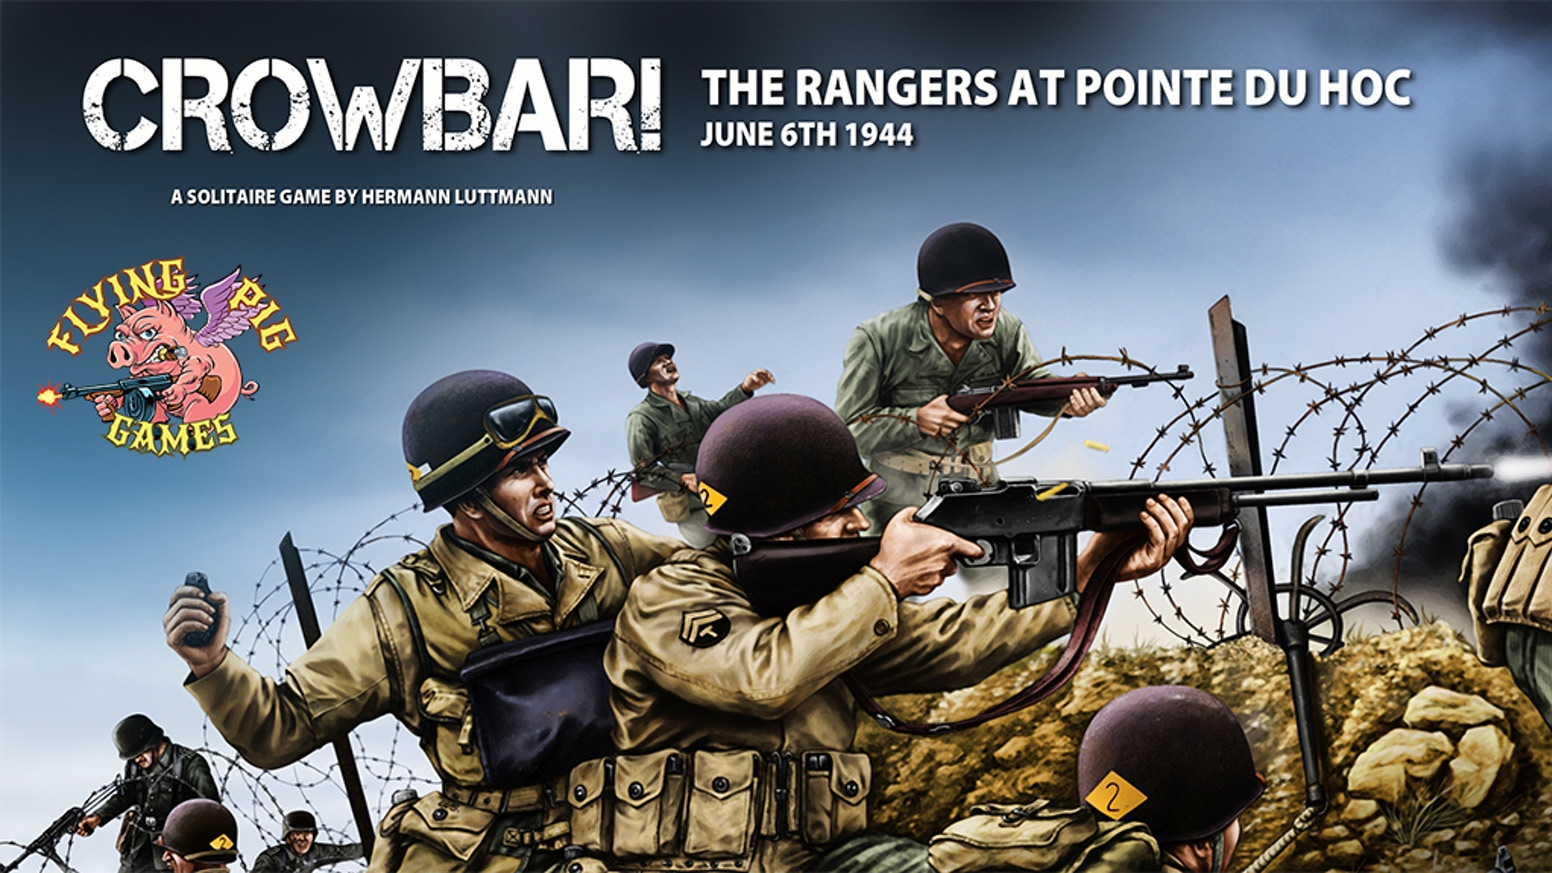 Crowbar is a thrilling solitaire game recreating the assault against the Germans defending Pointe Du Hoc on June 6th, 1944.